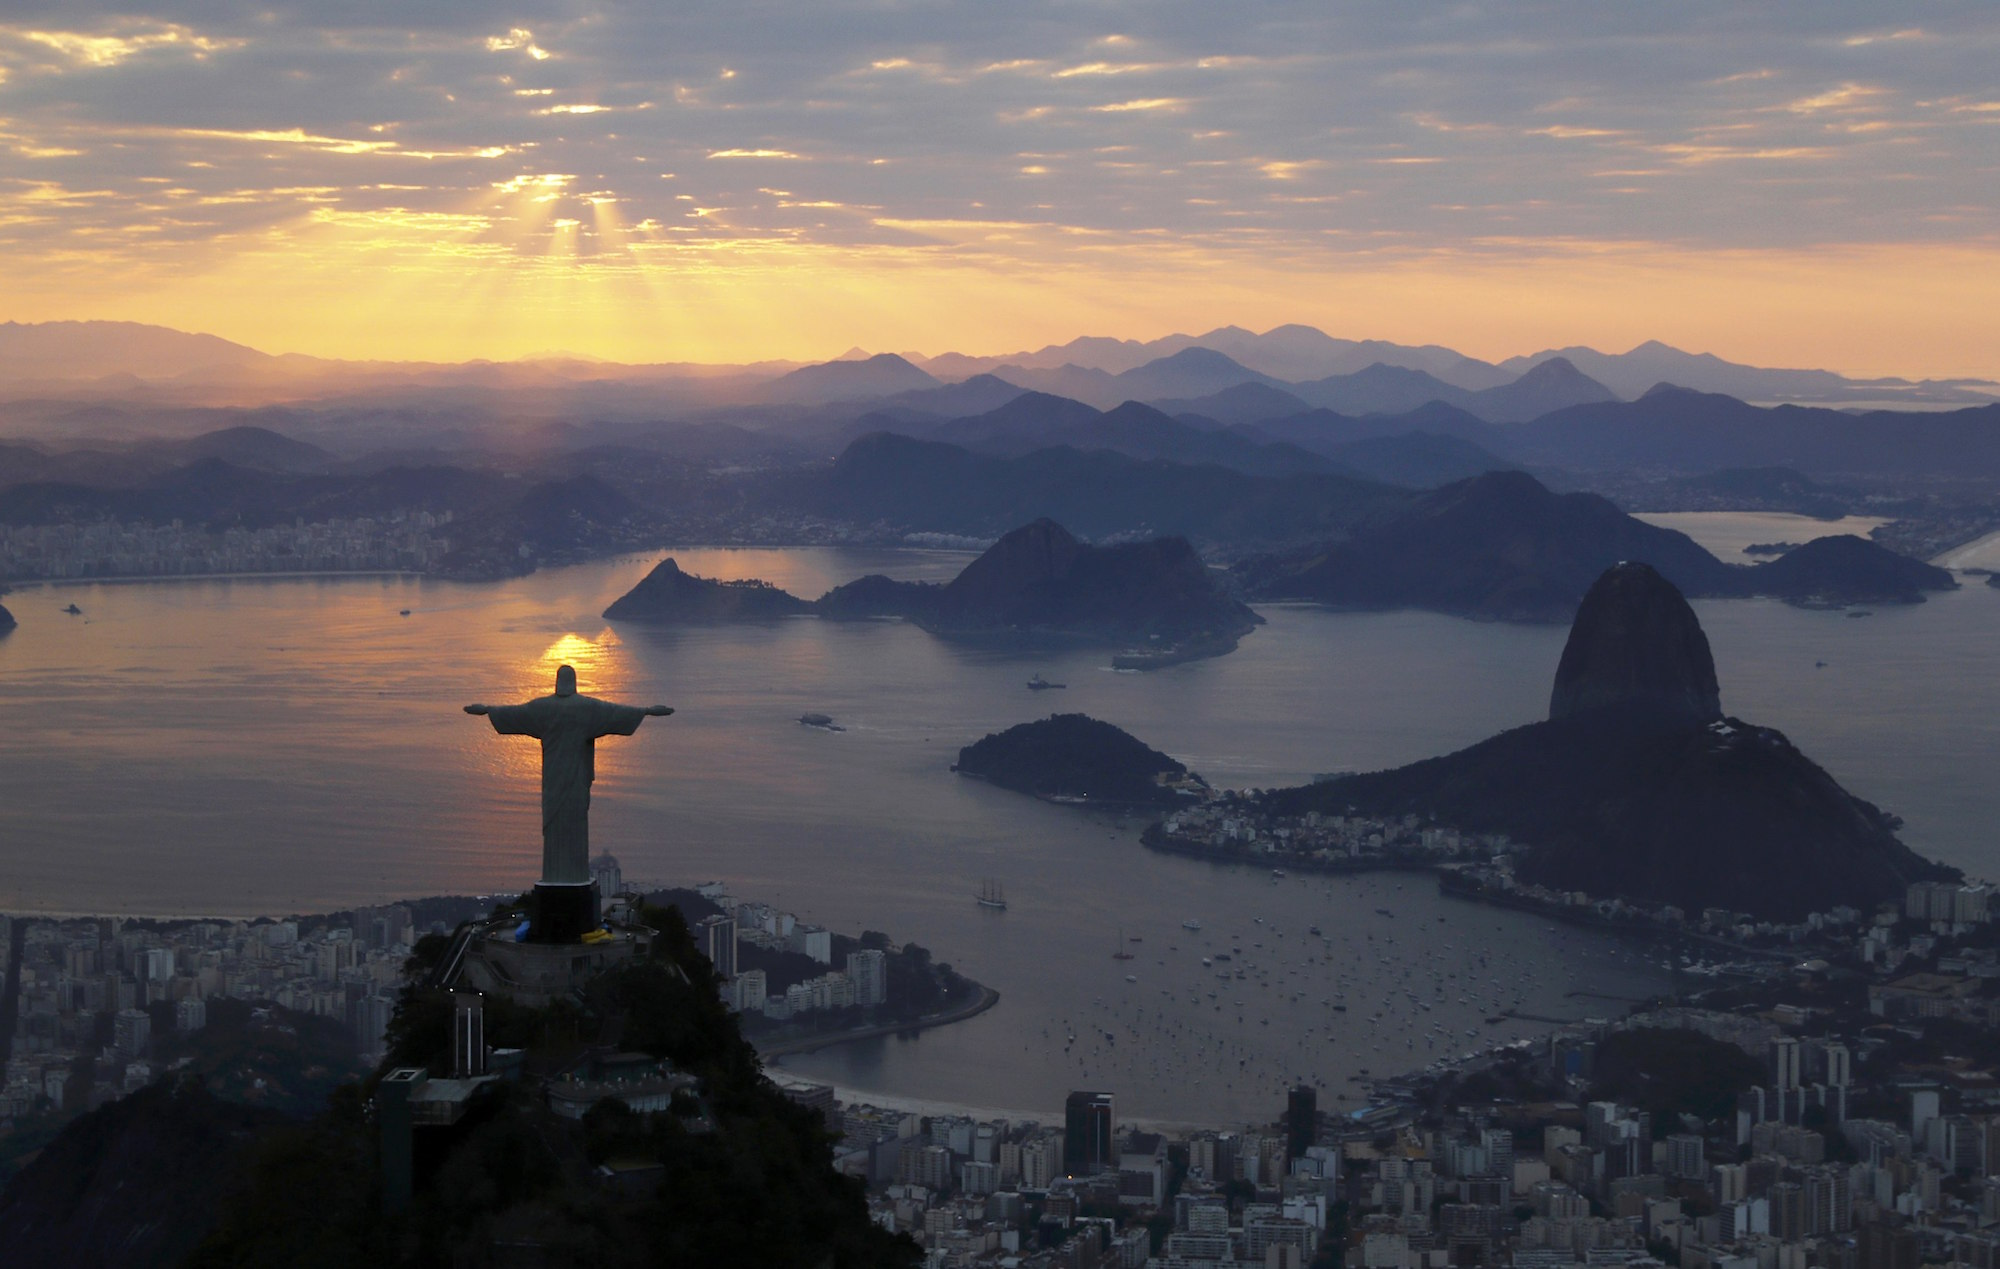 Jesus Christ The Redeemer is seen during sunrise in Rio de Janeiro, Brazil August 2, 2016. REUTERS/Wolfgang Rattay TPX IMAGES OF THE DAY